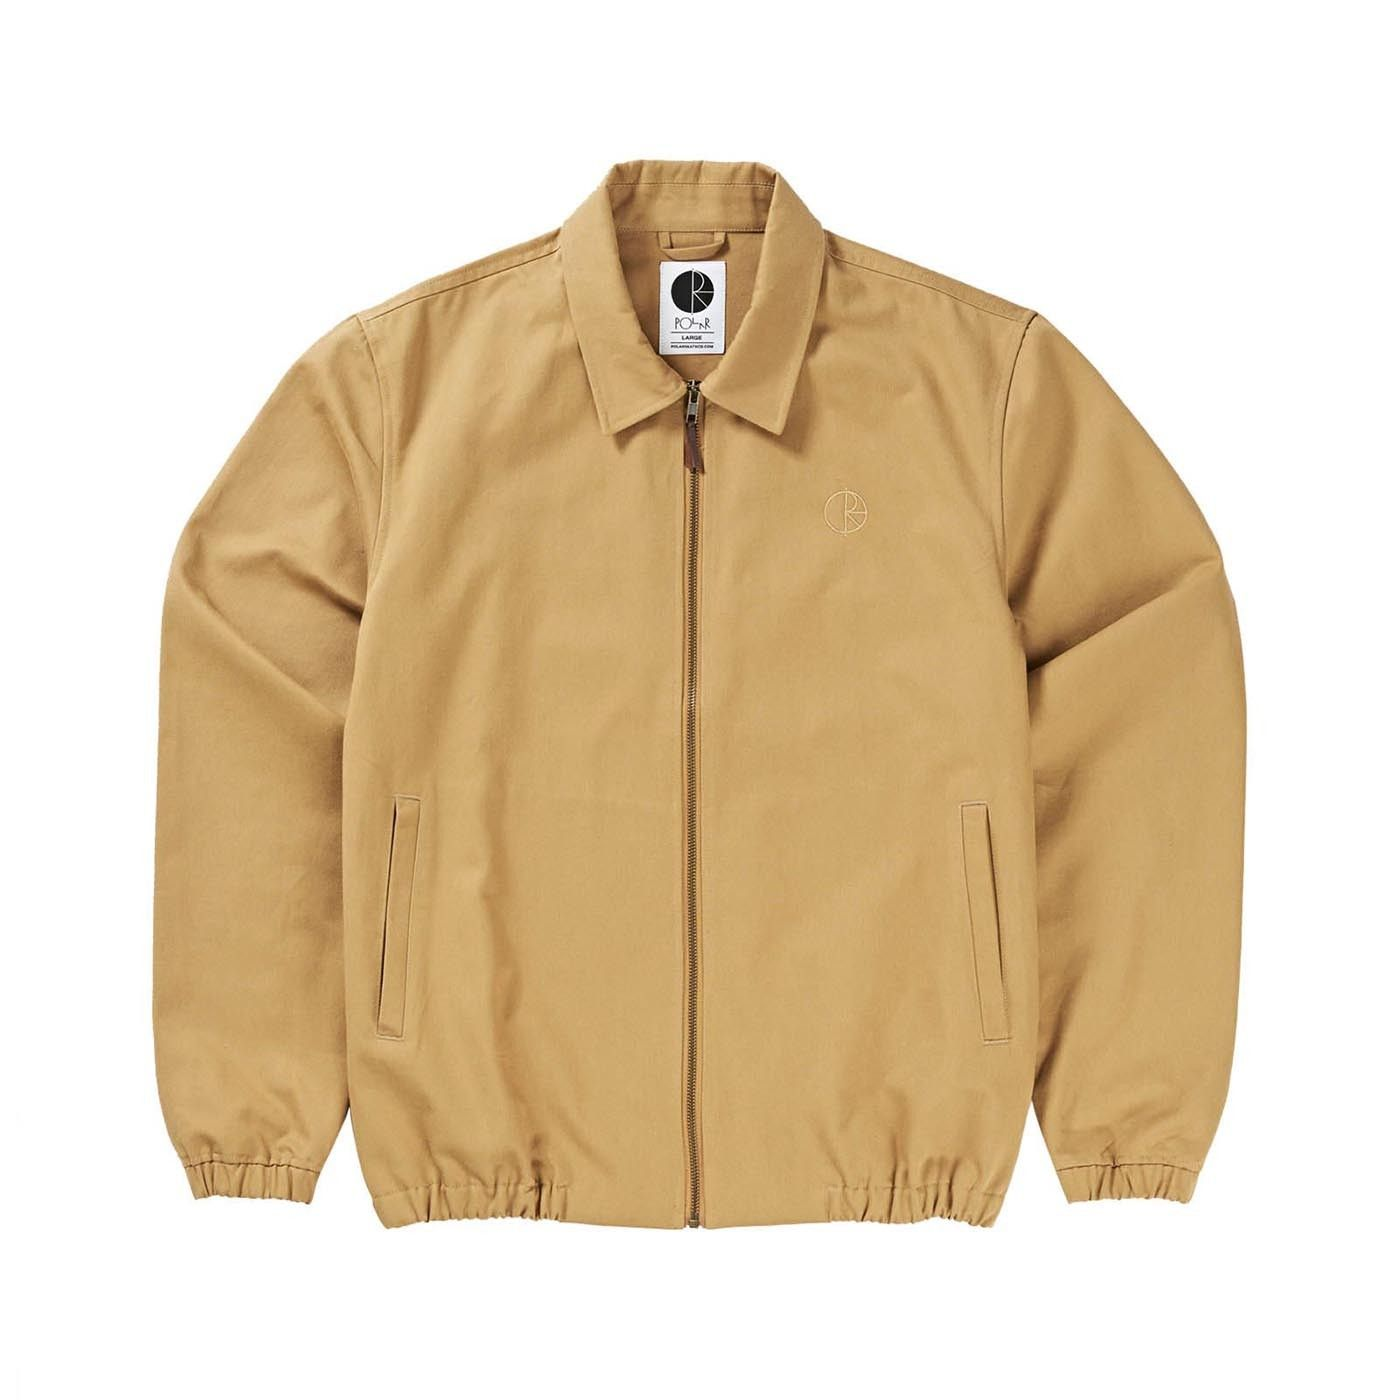 Polar skateboards jacket